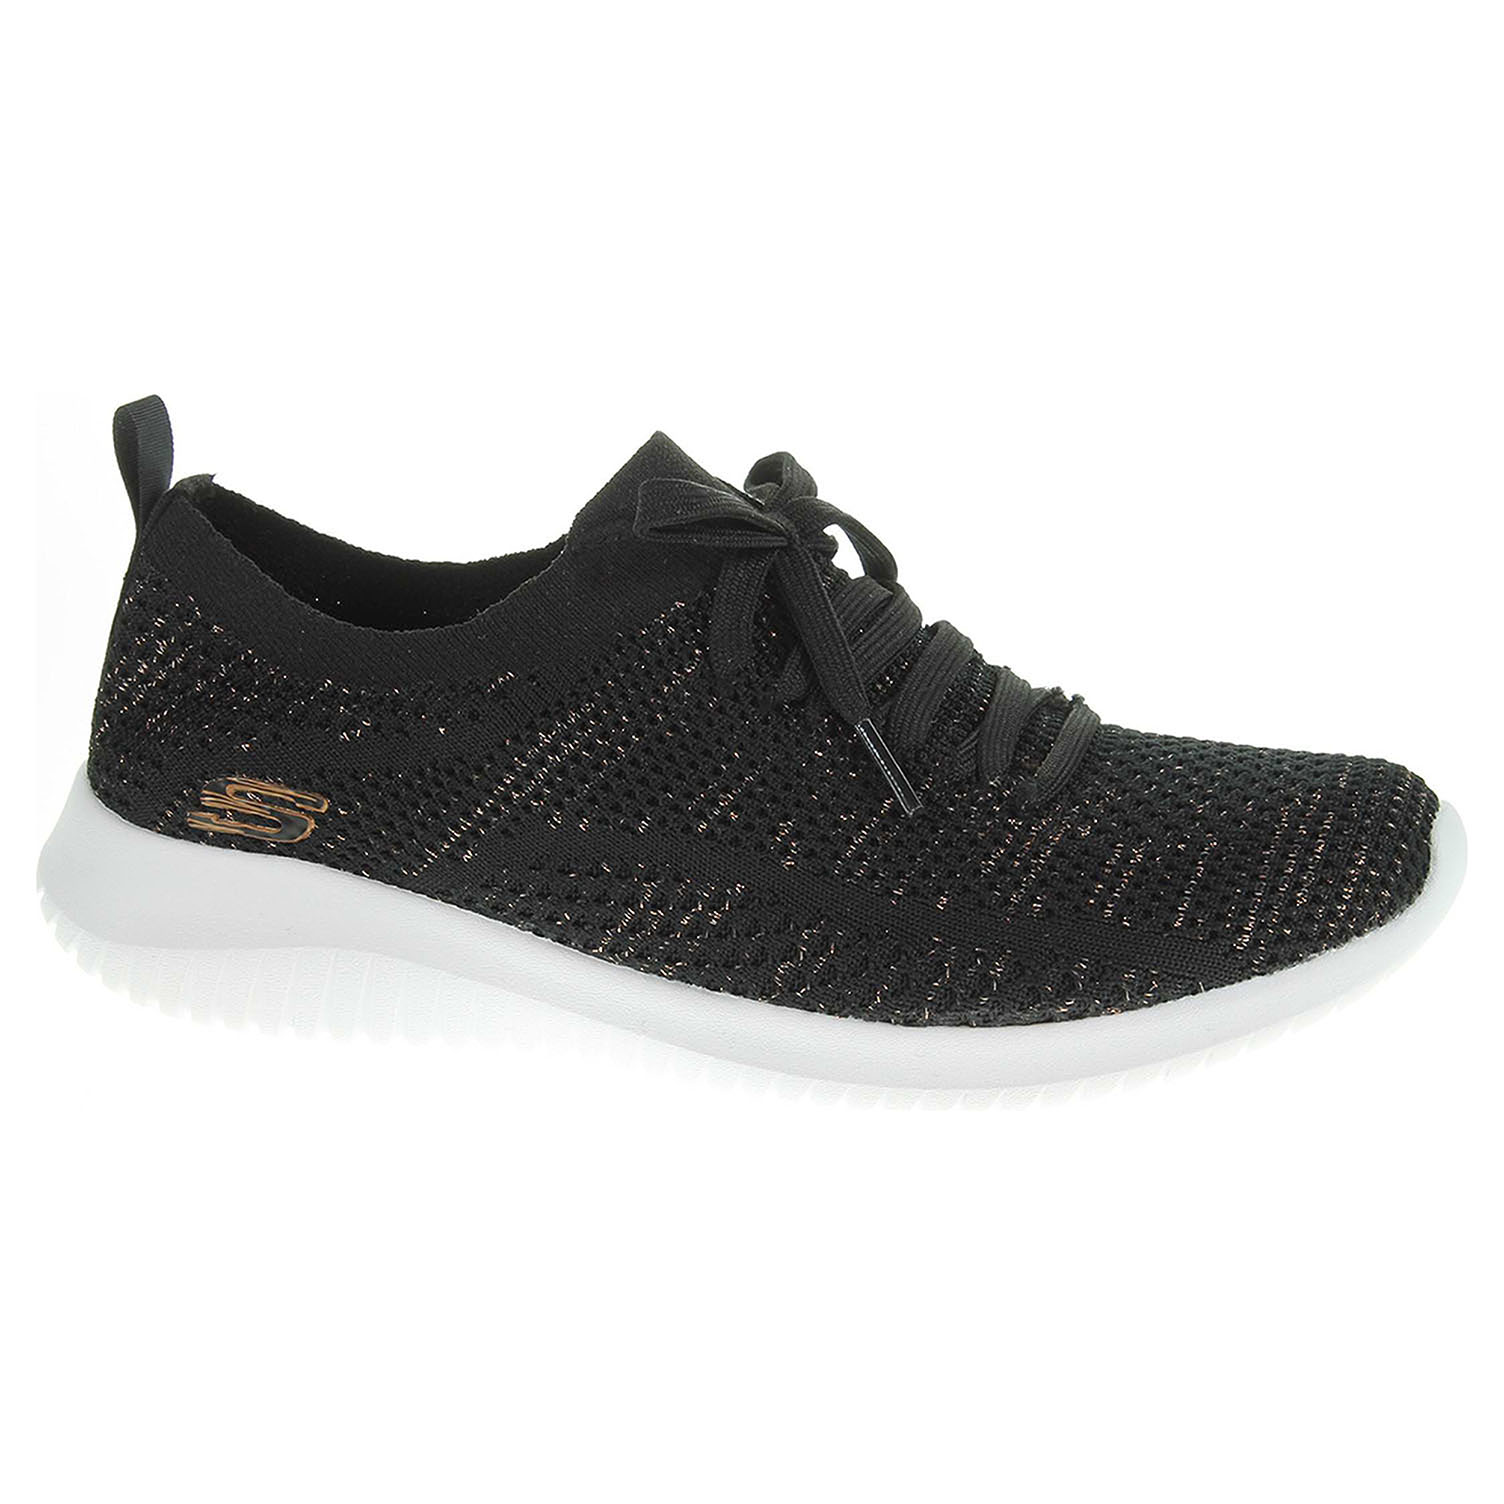 Skechers Ultra Flex - Salutations black-gold